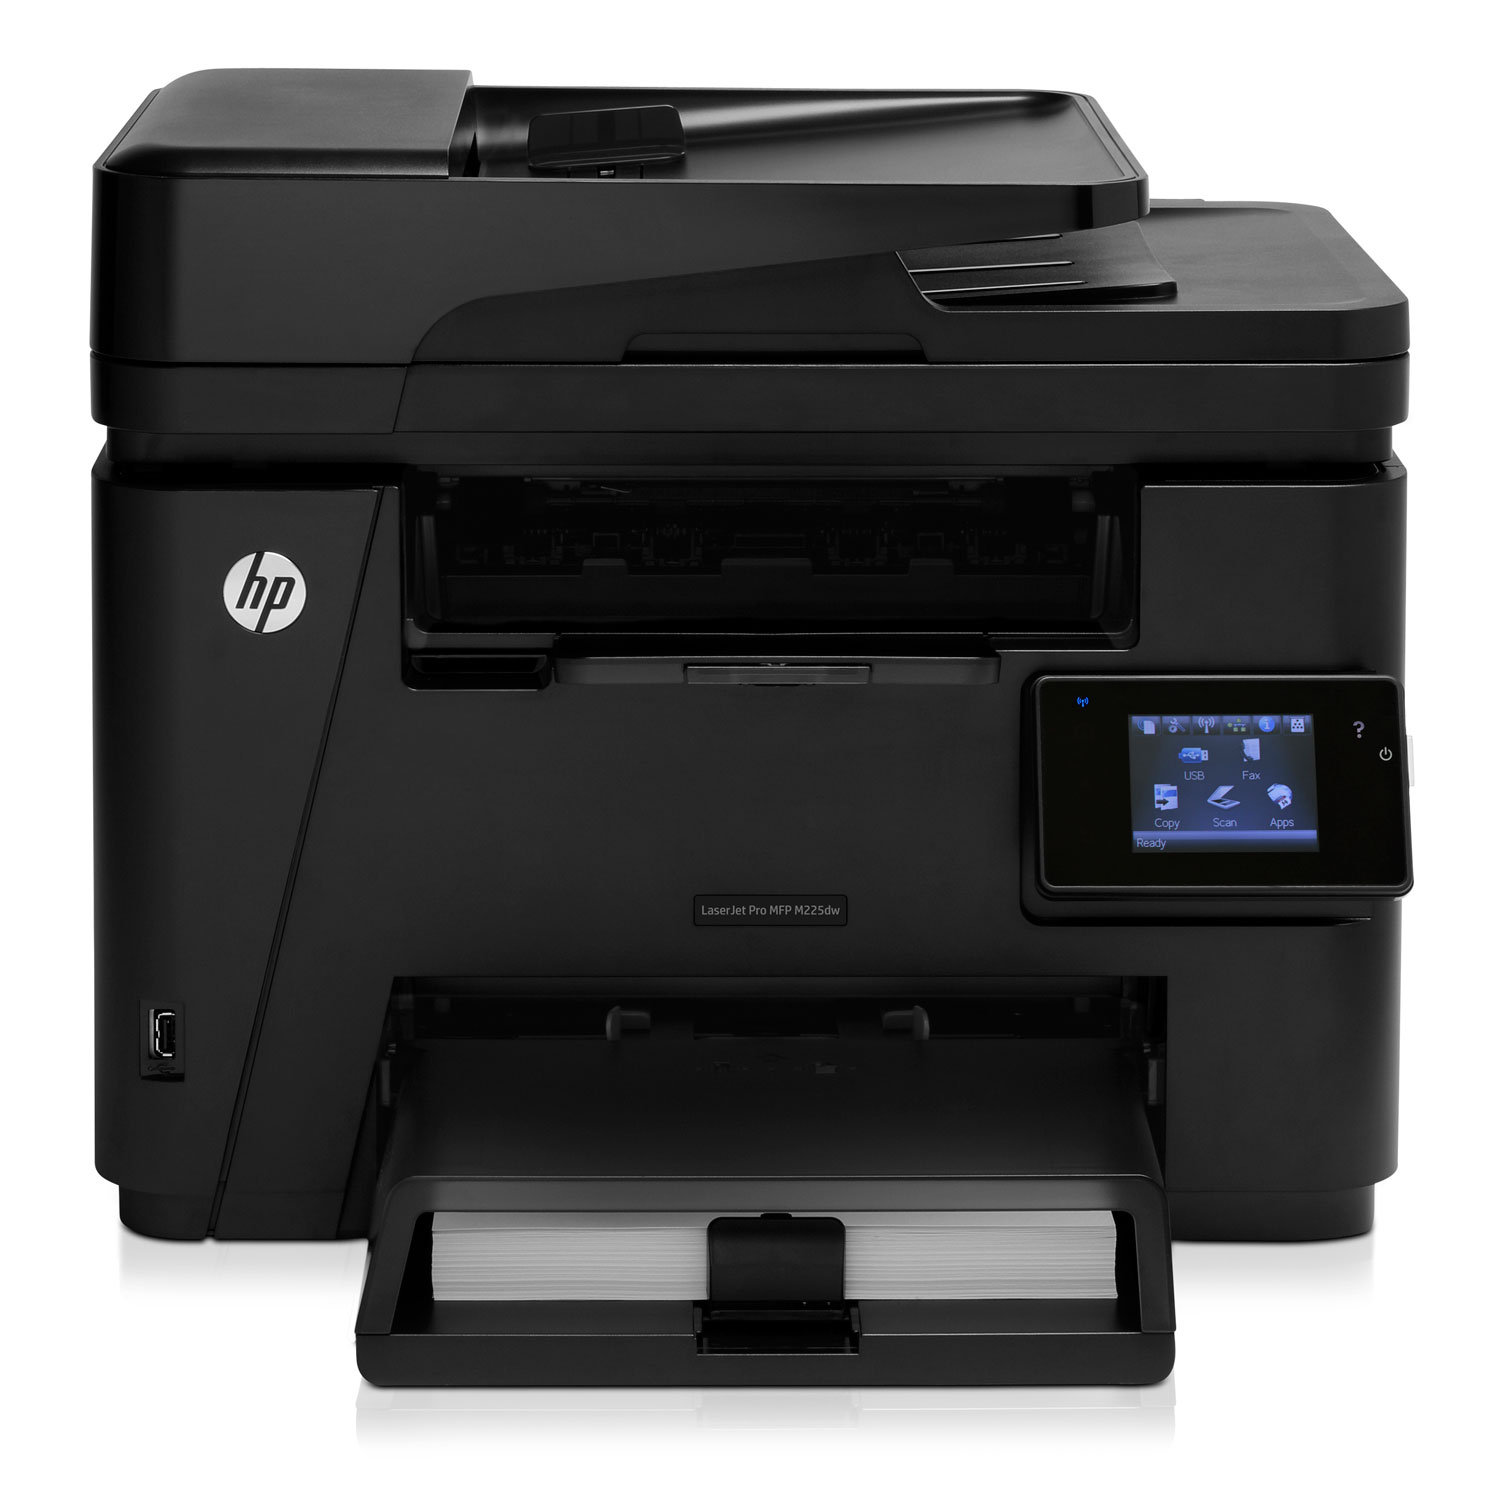 hp laserjet pro mfp m225dw imprimante multifonction hp sur. Black Bedroom Furniture Sets. Home Design Ideas